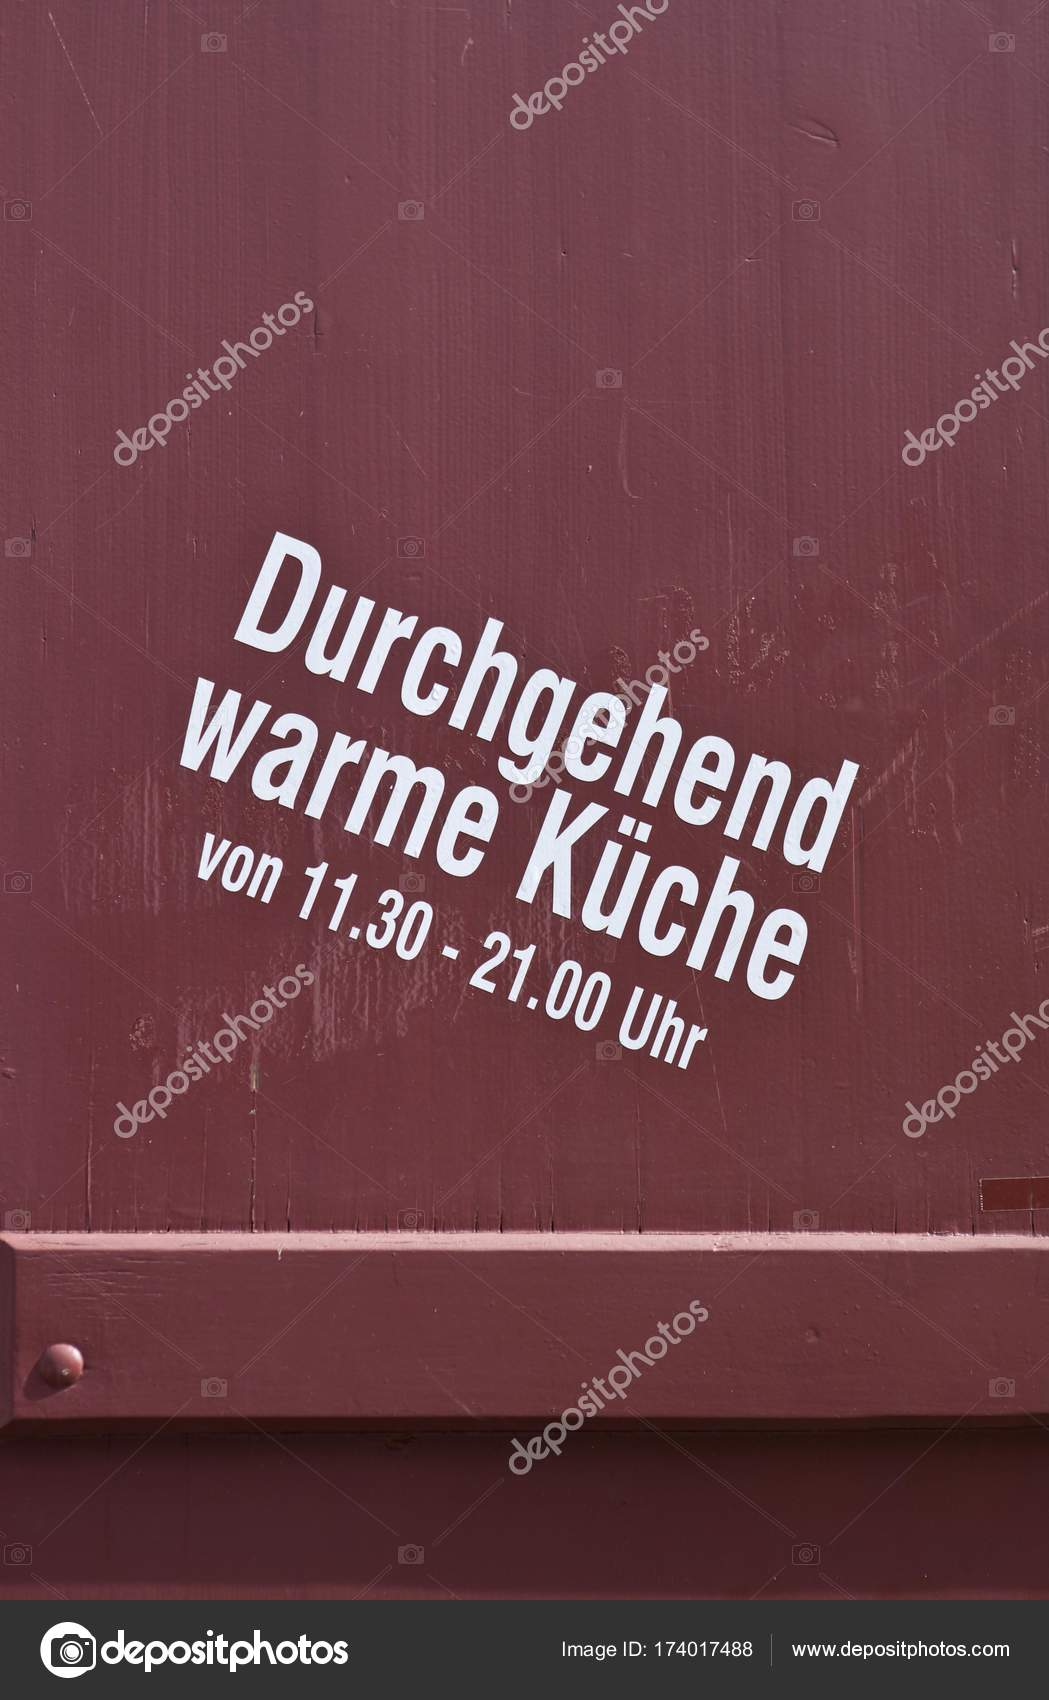 Durchgehend Warme Küche Lettering Durchgehend Warme Kueche German Hot Meals Served All Day